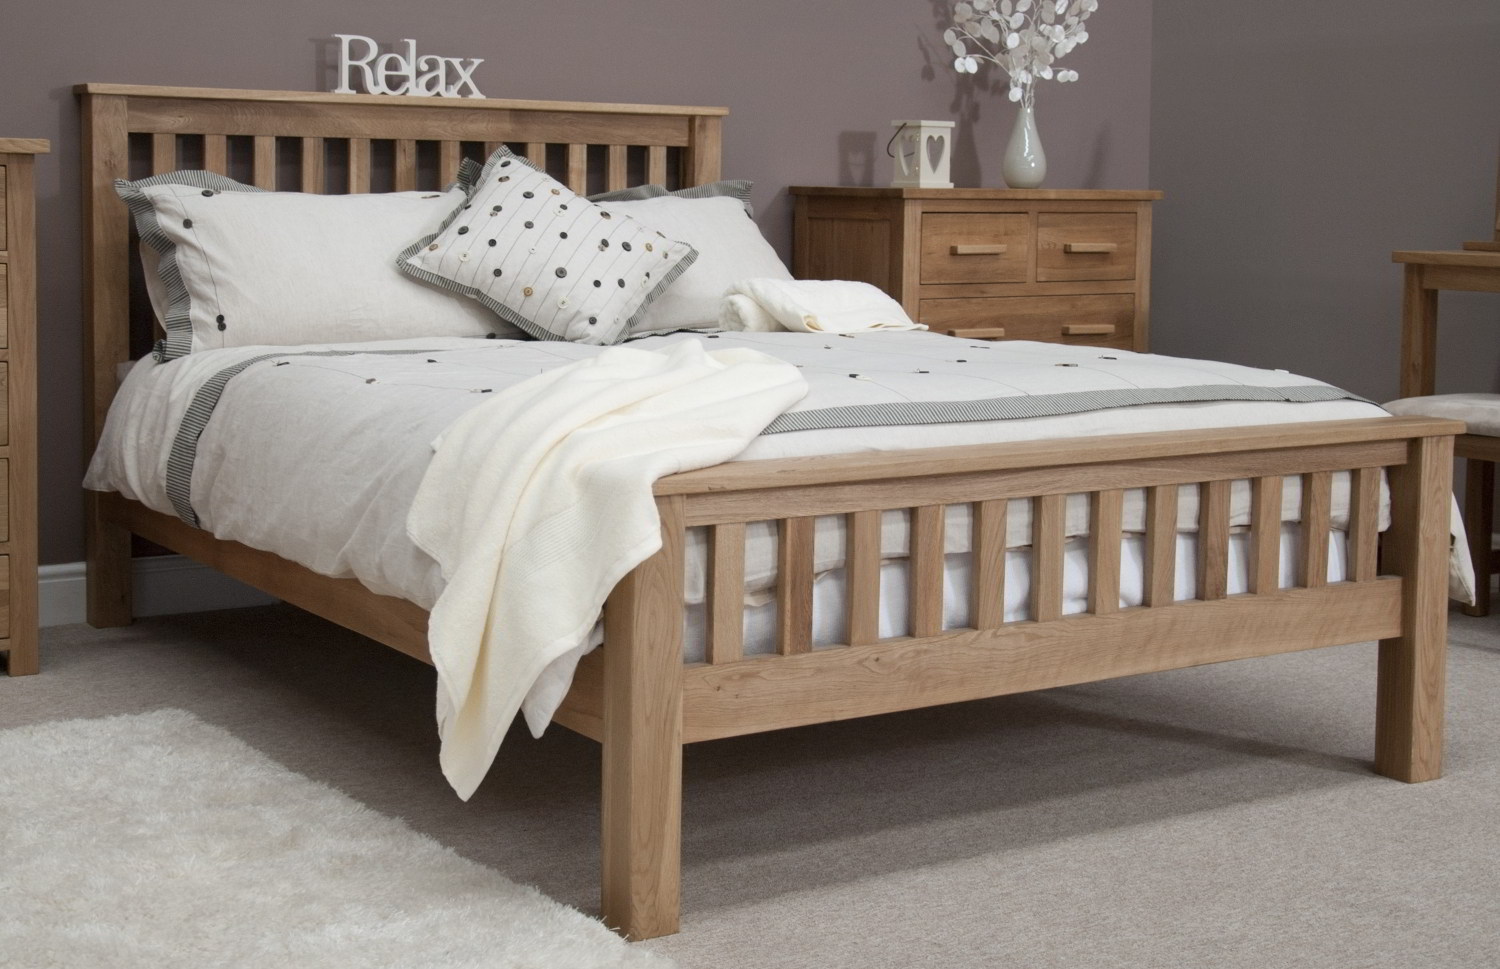 Eton solid contemporary oak bedroom furniture 5 39 king size - Contemporary king bedroom furniture ...